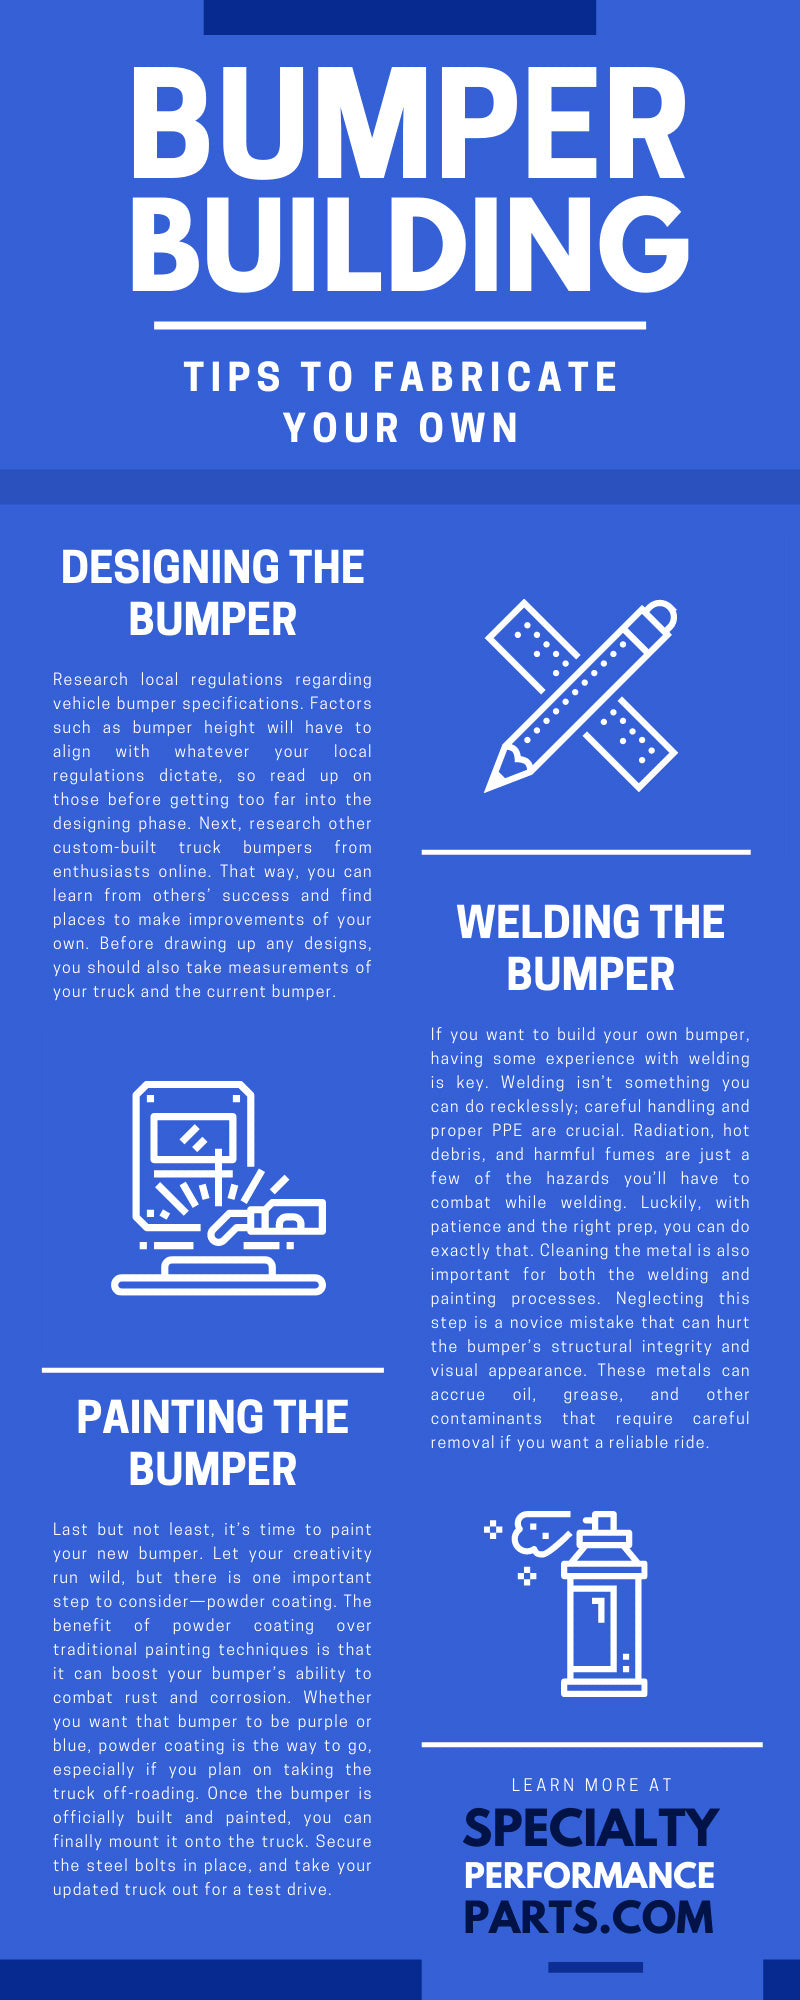 Bumper Building: Tips To Fabricate Your Own